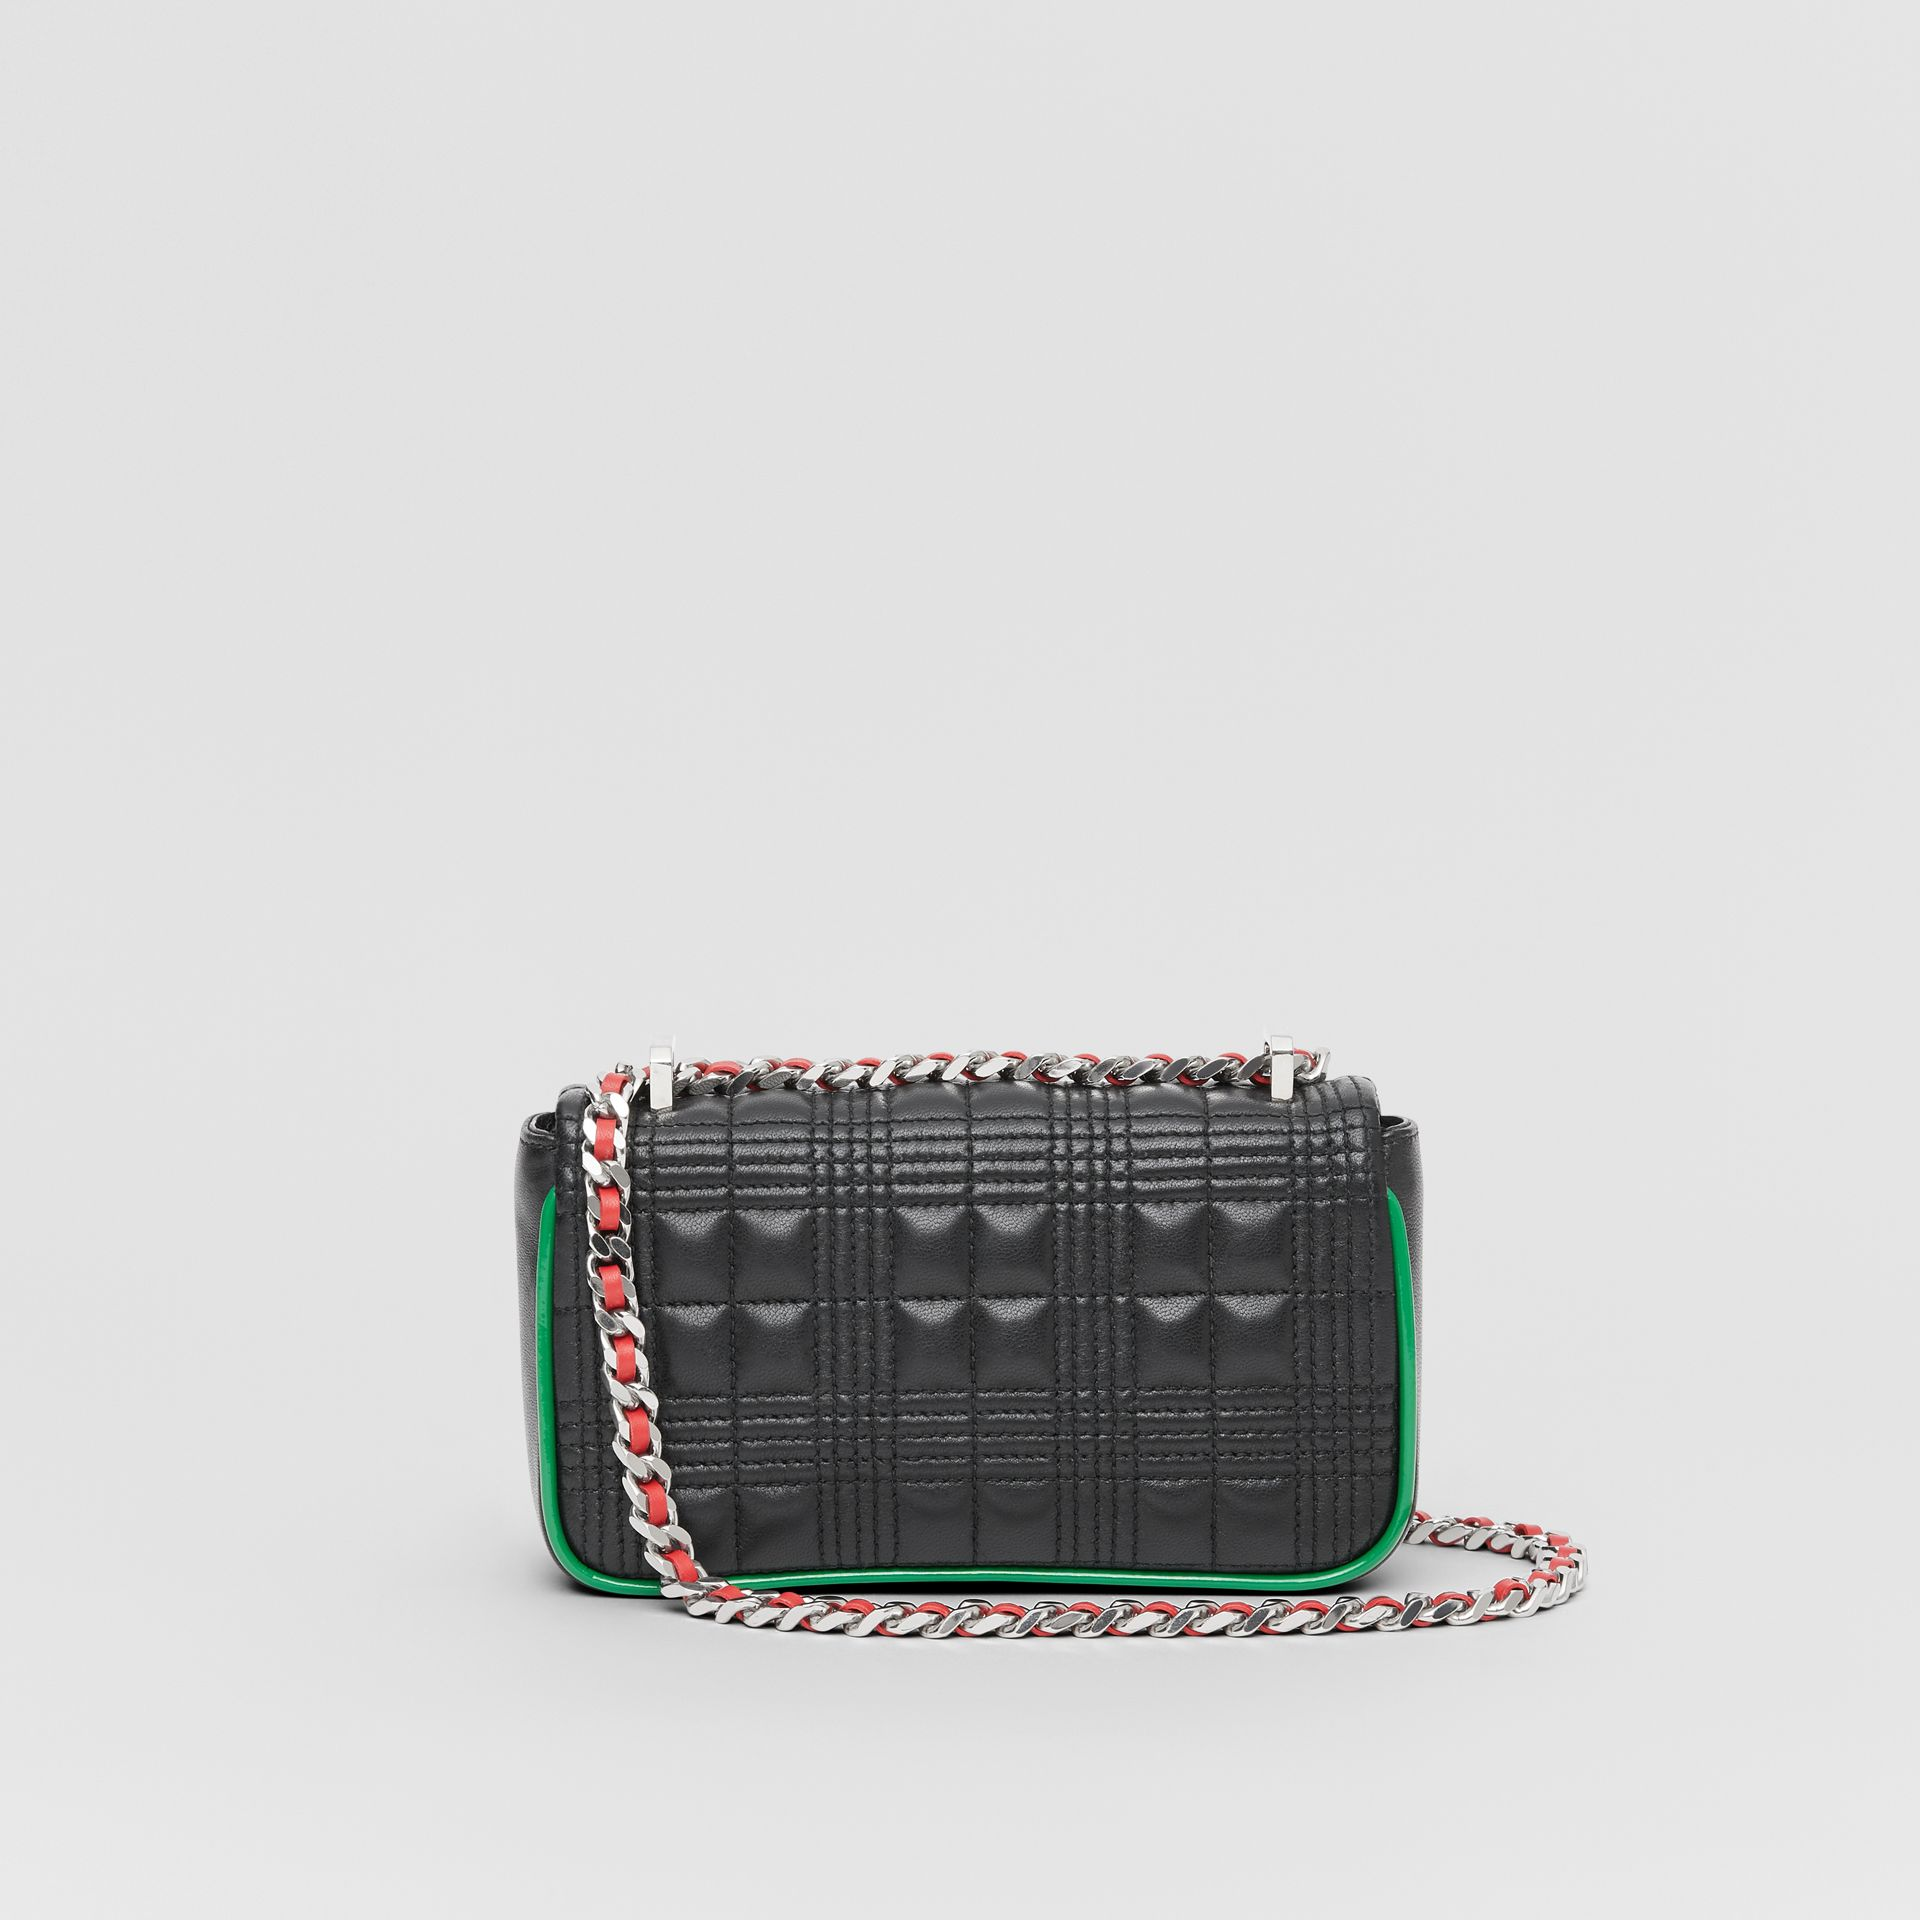 Mini Quilted Lambskin Lola Bag in Black - Women | Burberry United States - gallery image 7